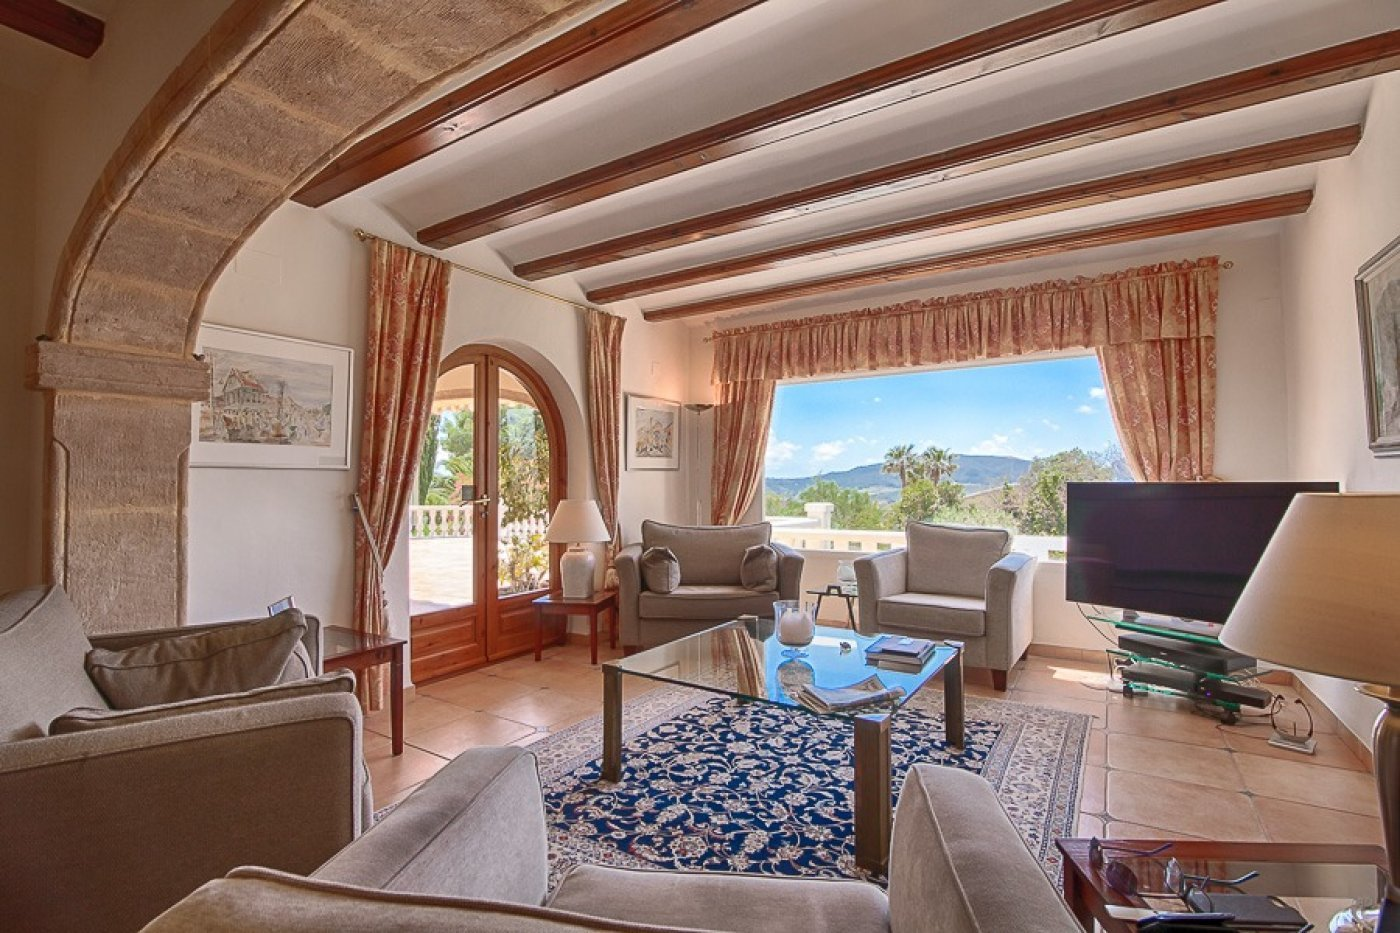 Fantastic villa with amazing view over the Montgo